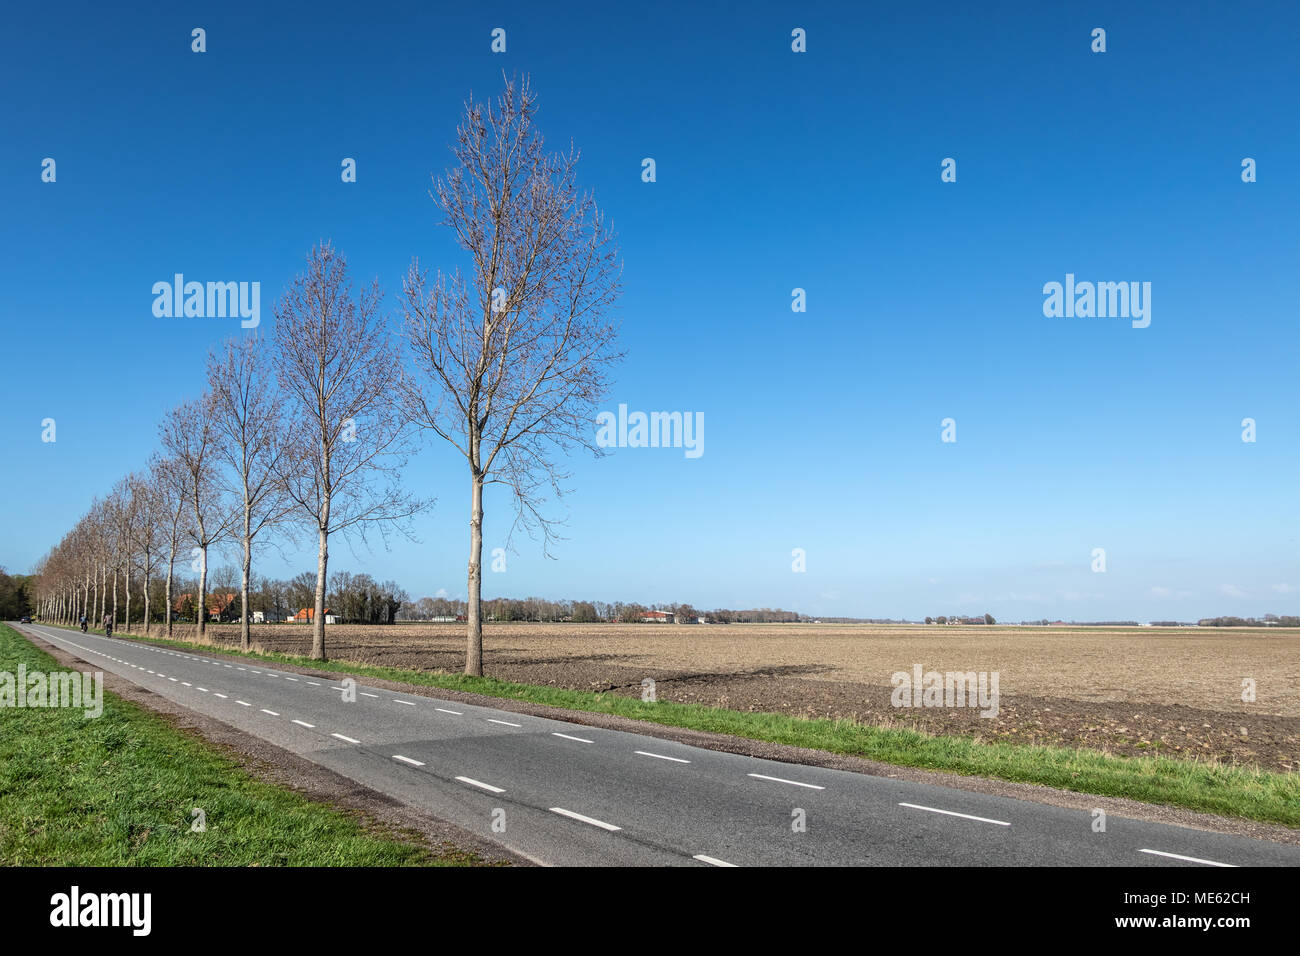 Dutch farmland in spring with bare fields - Stock Image